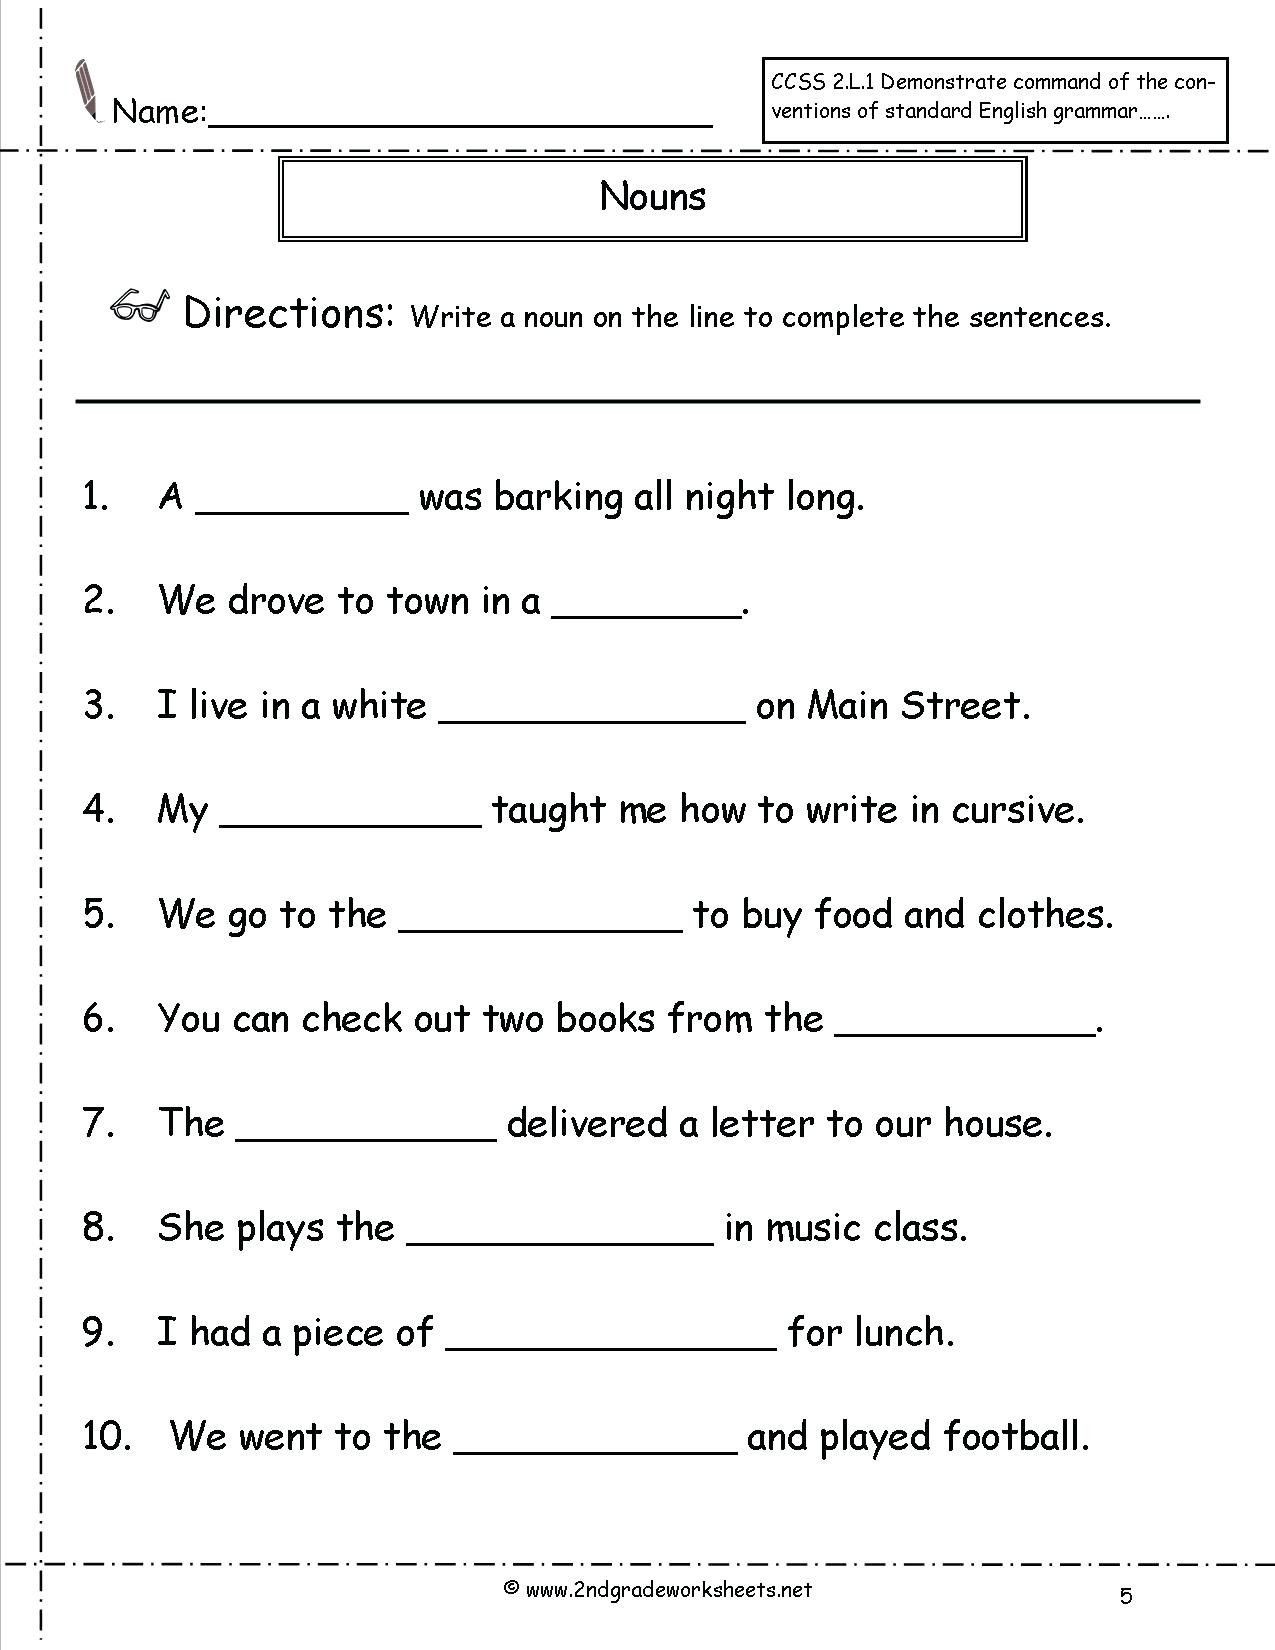 Noun Worksheets 2nd Grade Pin On Educational Worksheets Template